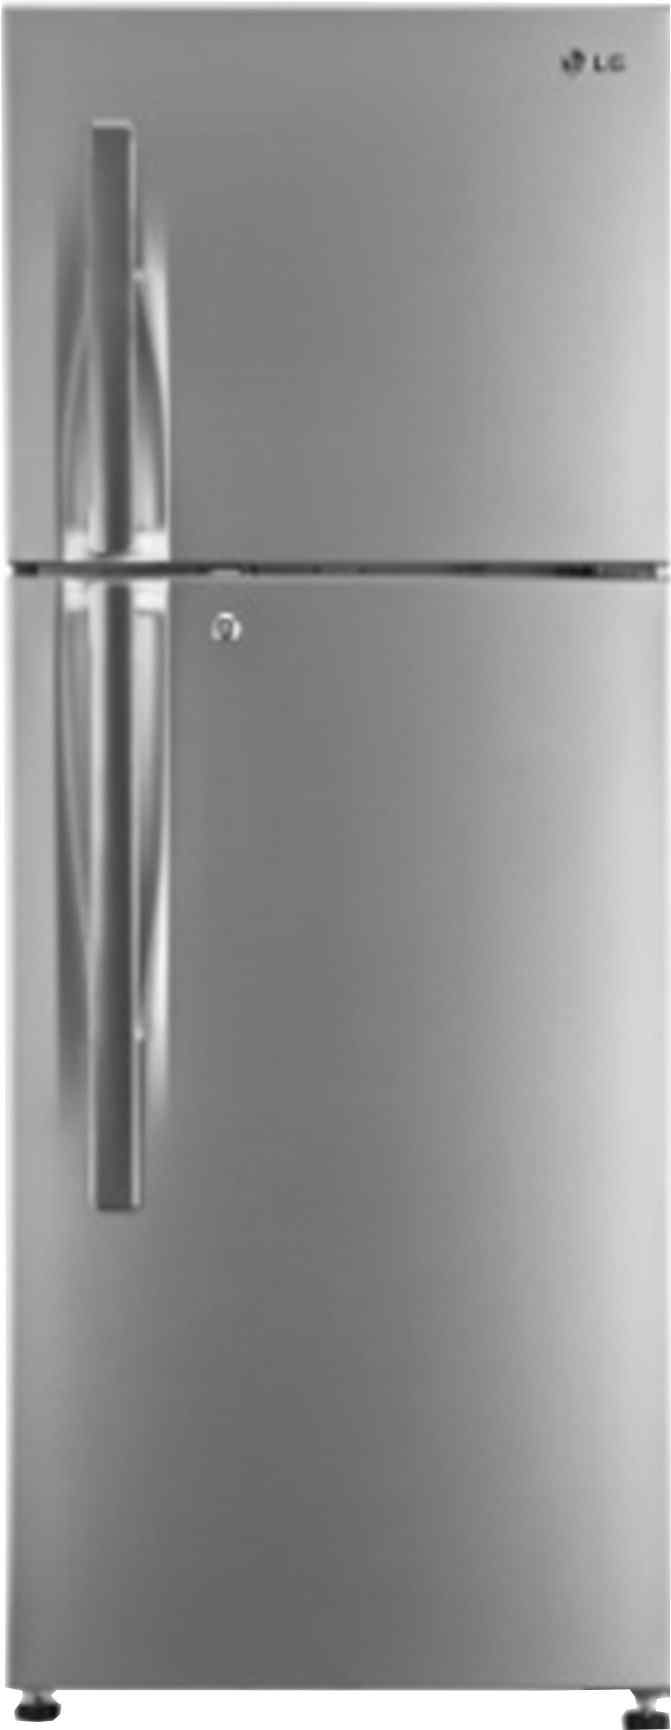 Best price on LG GL-T302RPZM 284L Frost Free Double Door Refrigerator in India